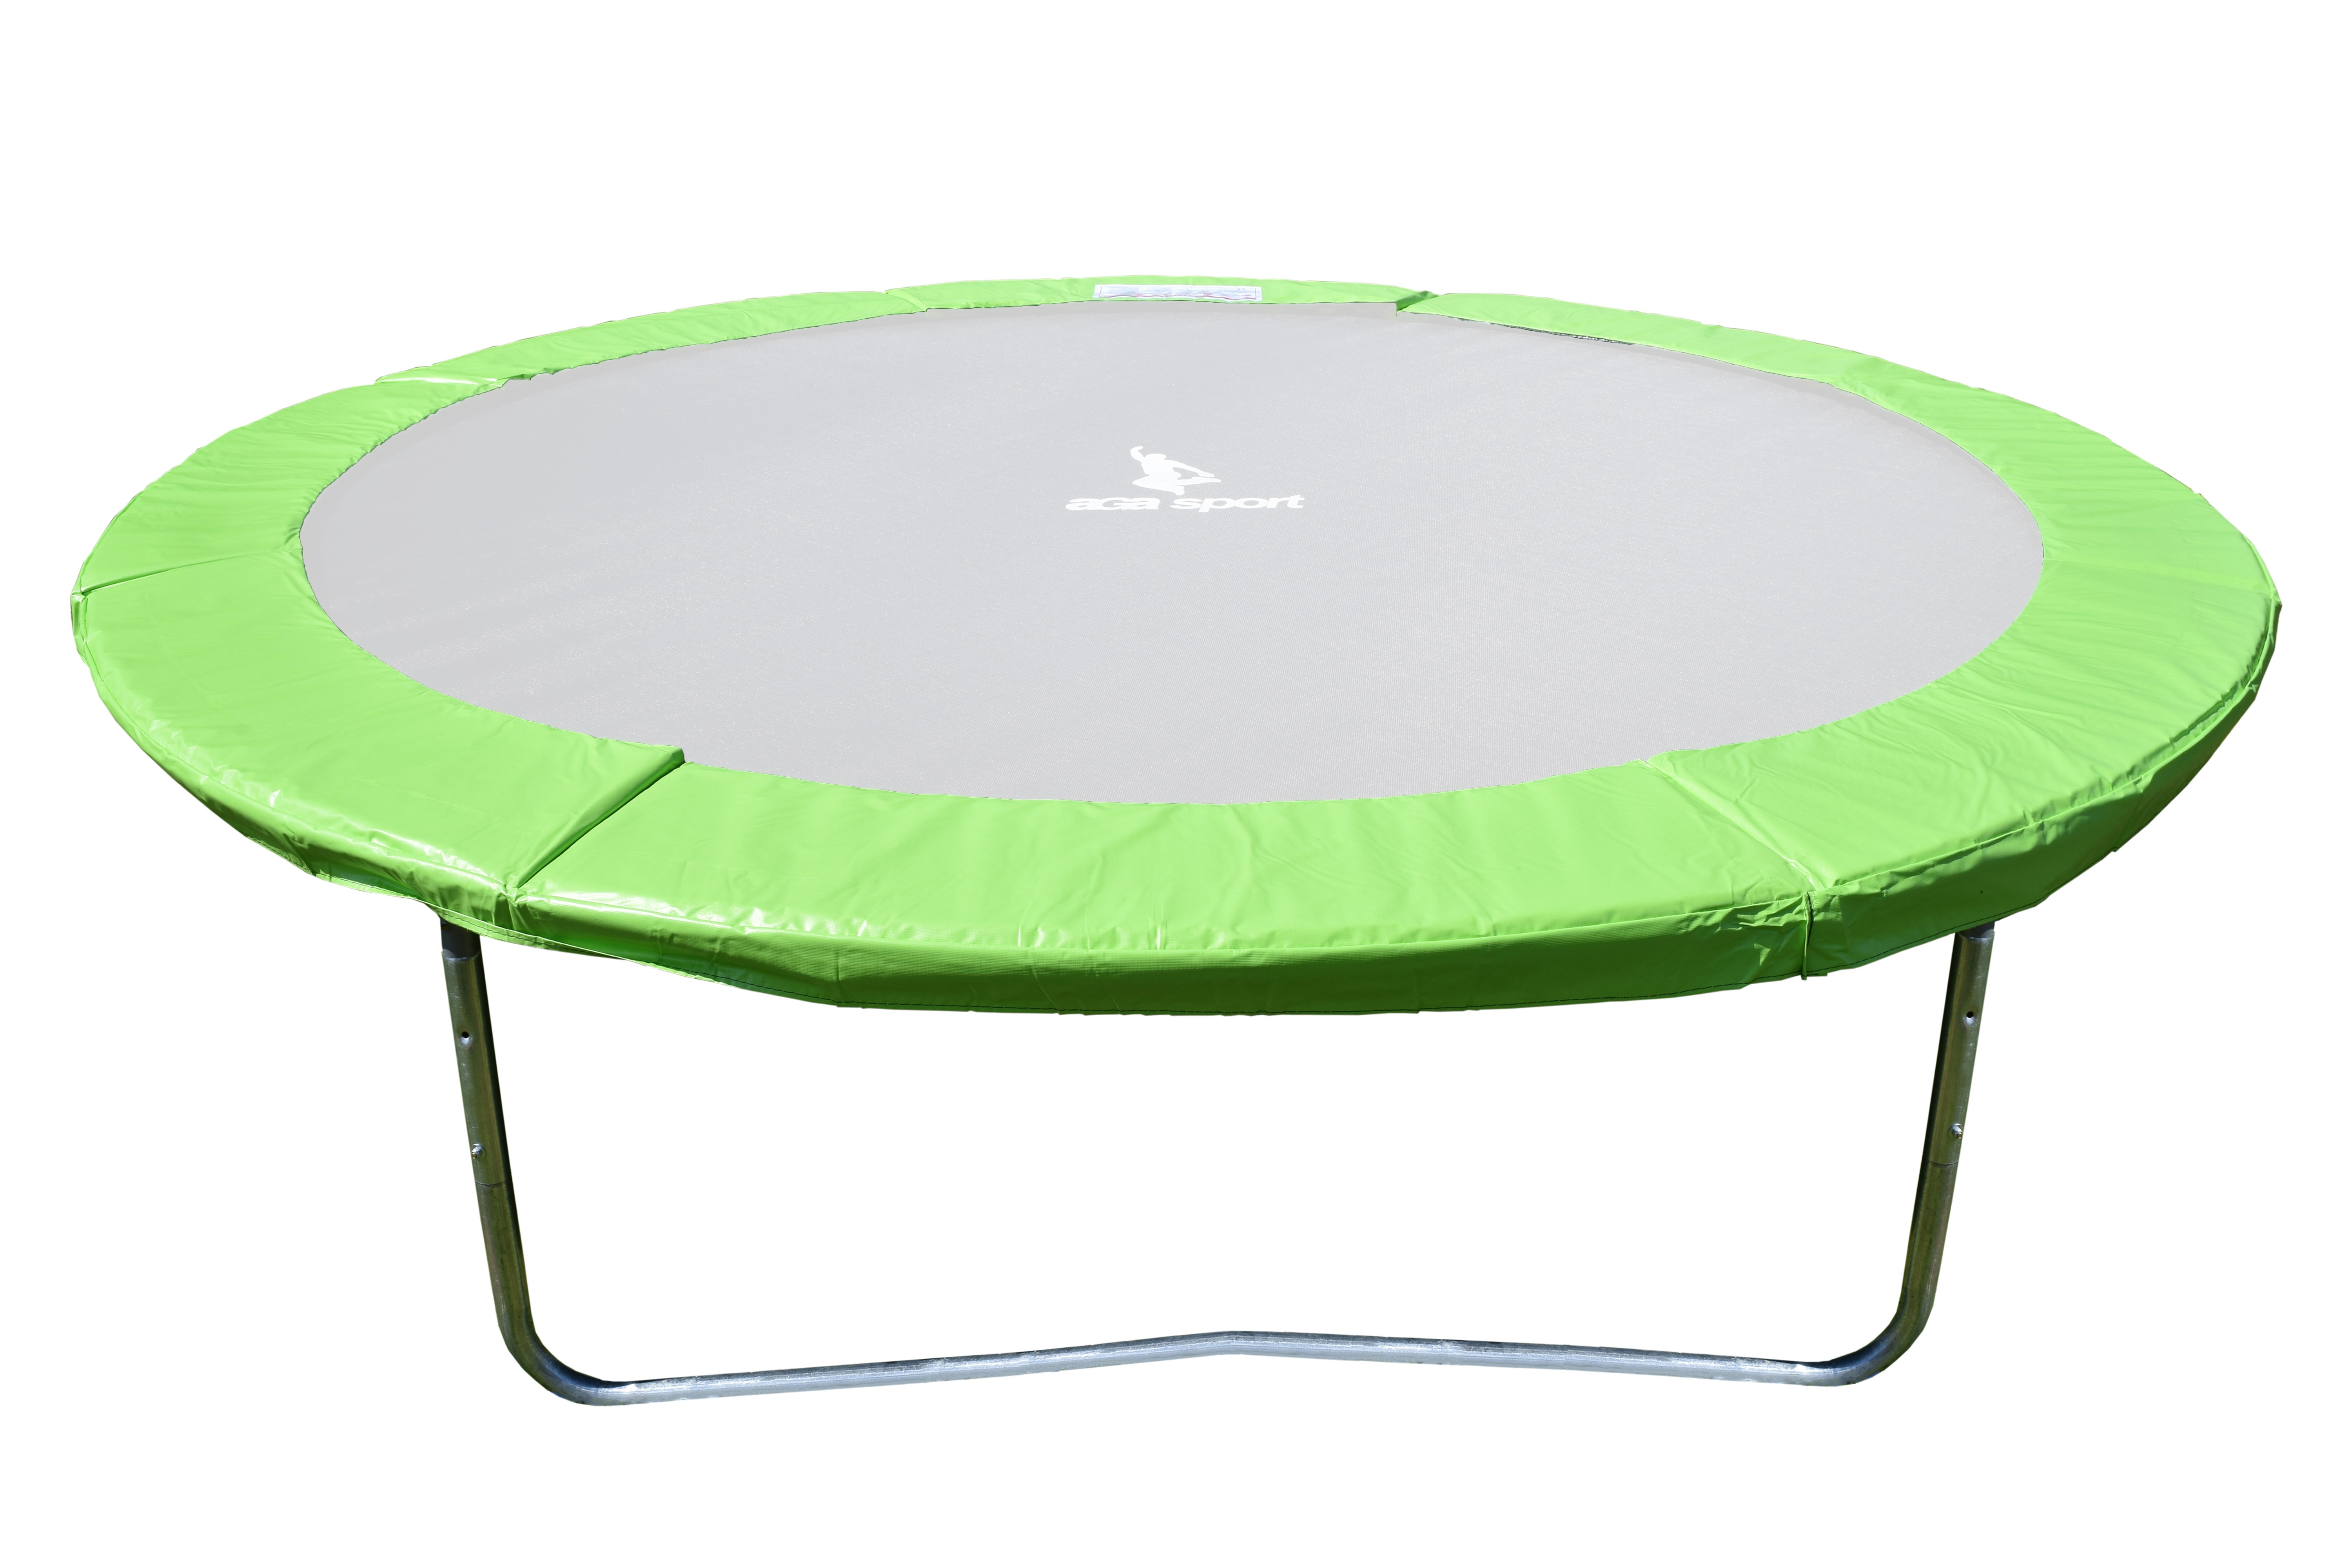 Aga Chránič pružin 180 cm Light Green